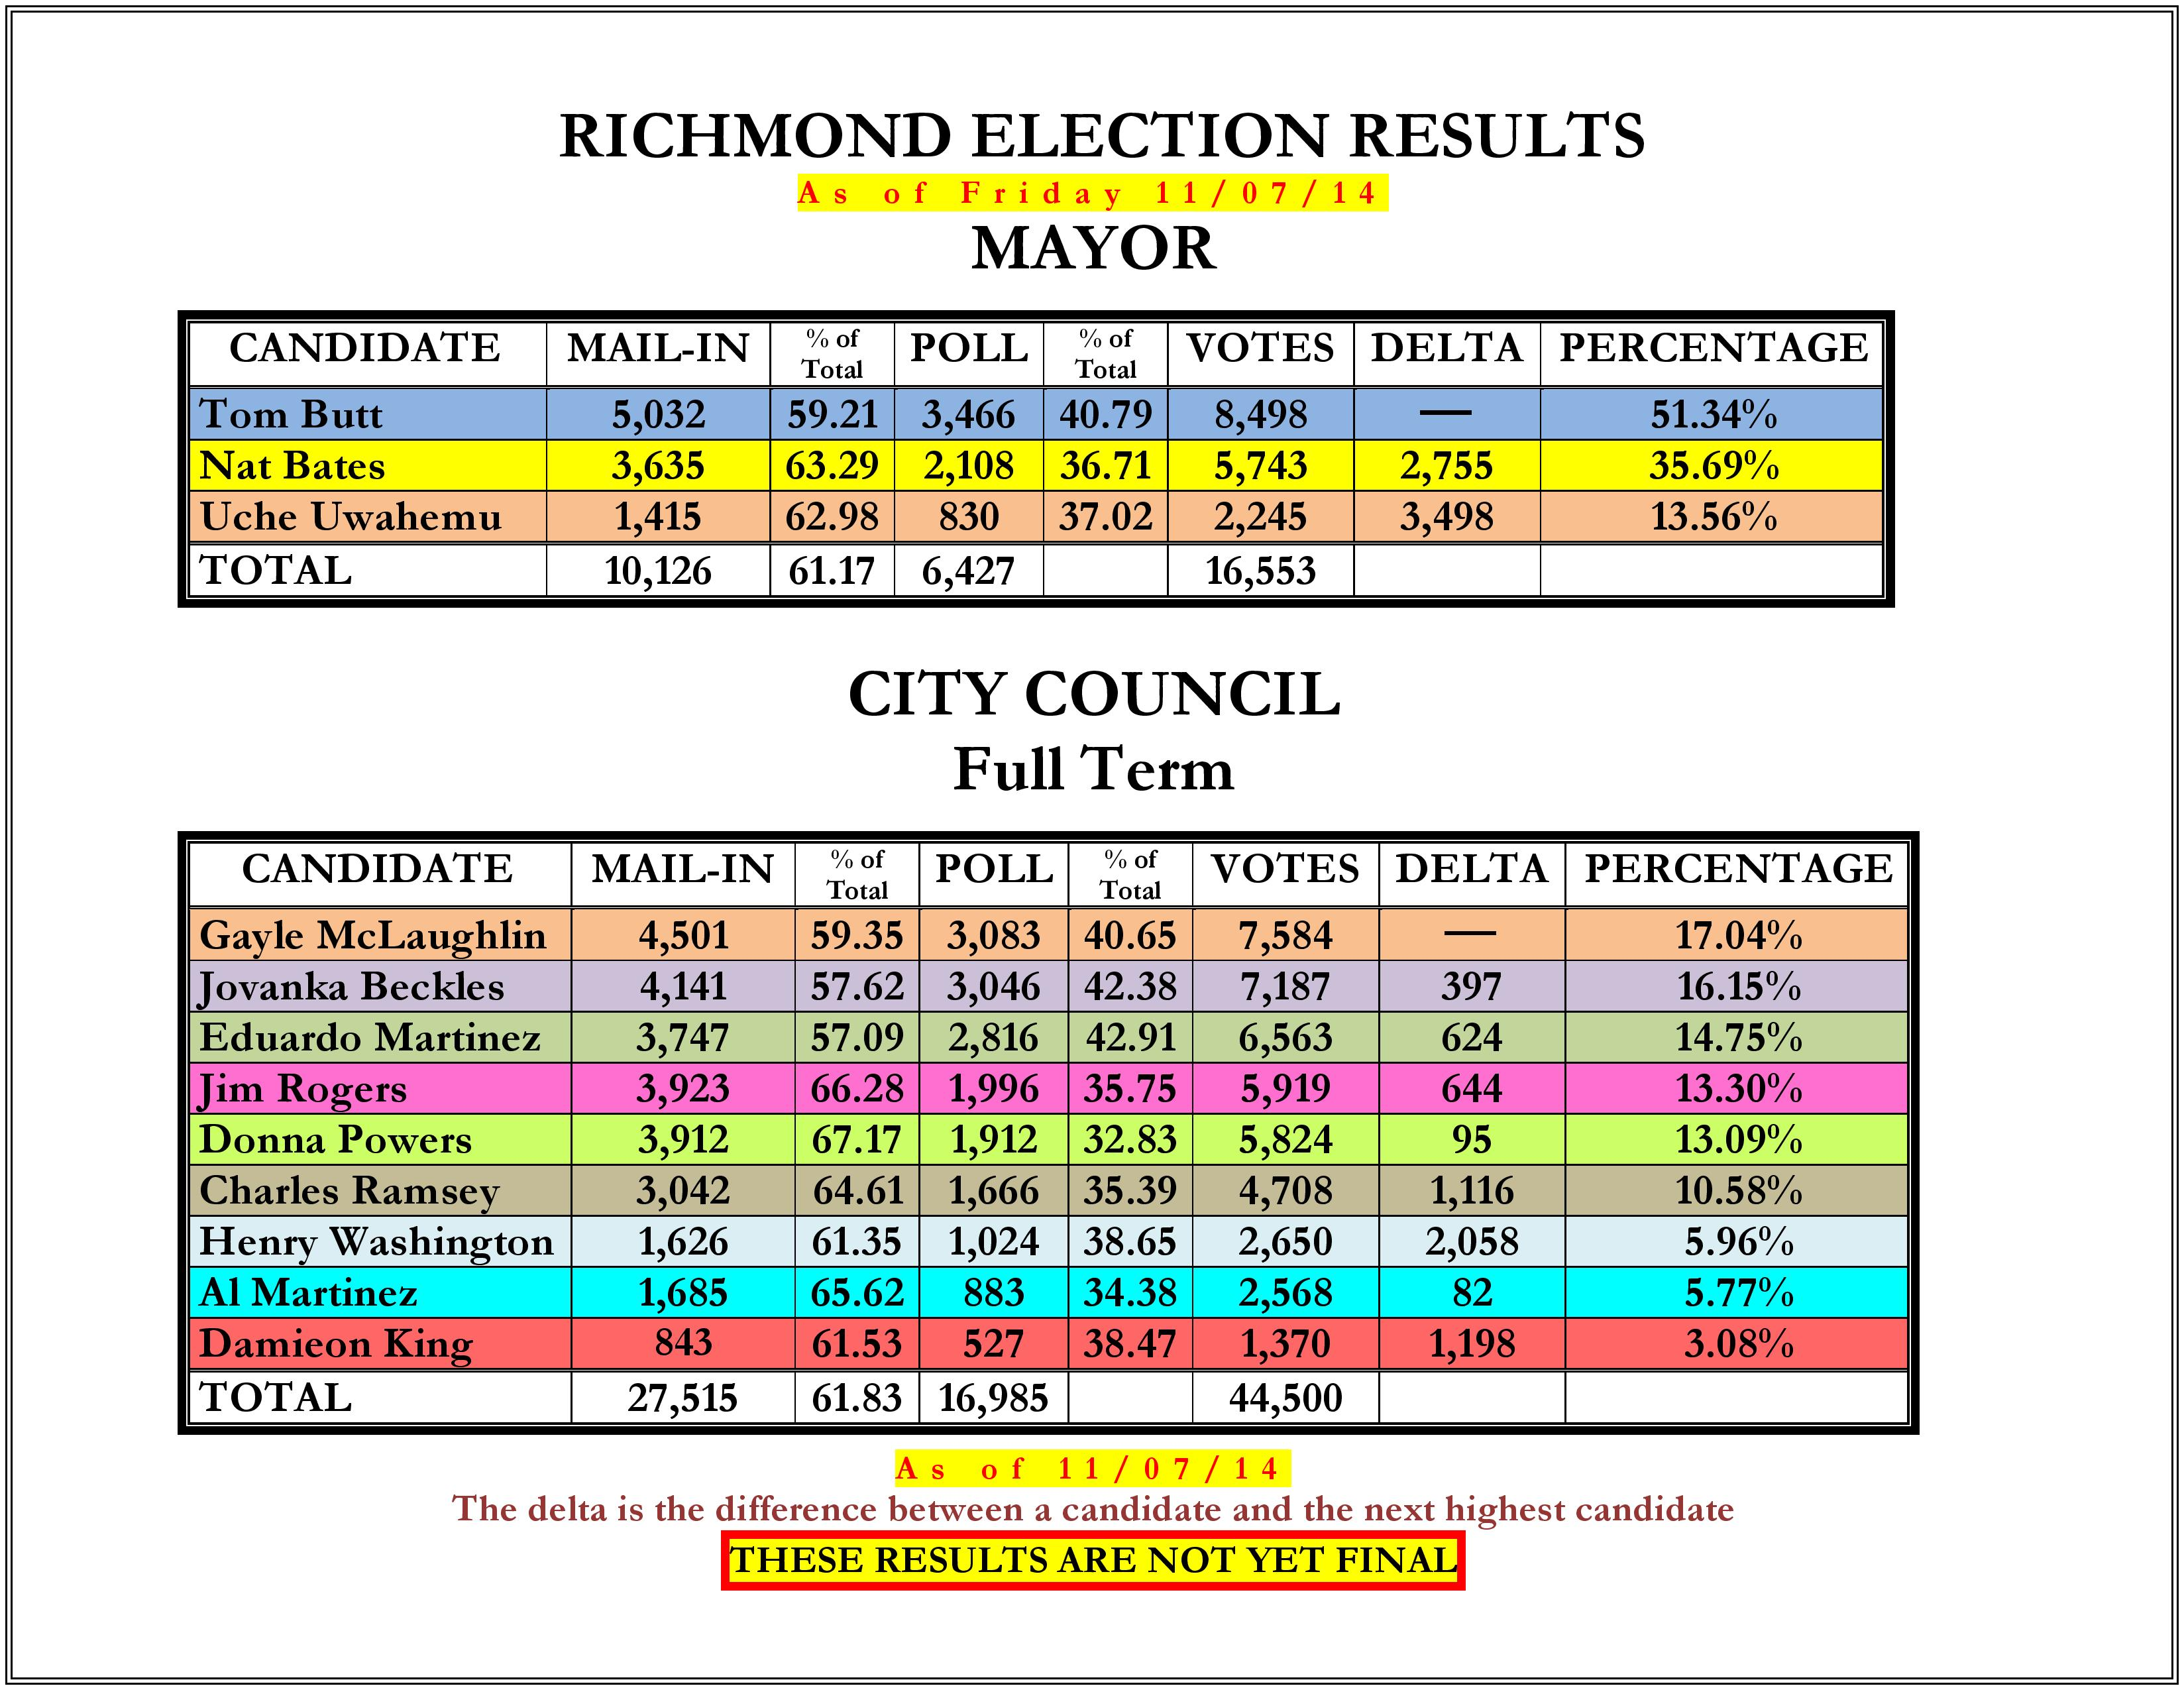 14_Richmond_Election_Results-2_11_07_14_Page_1-page-001.jpg